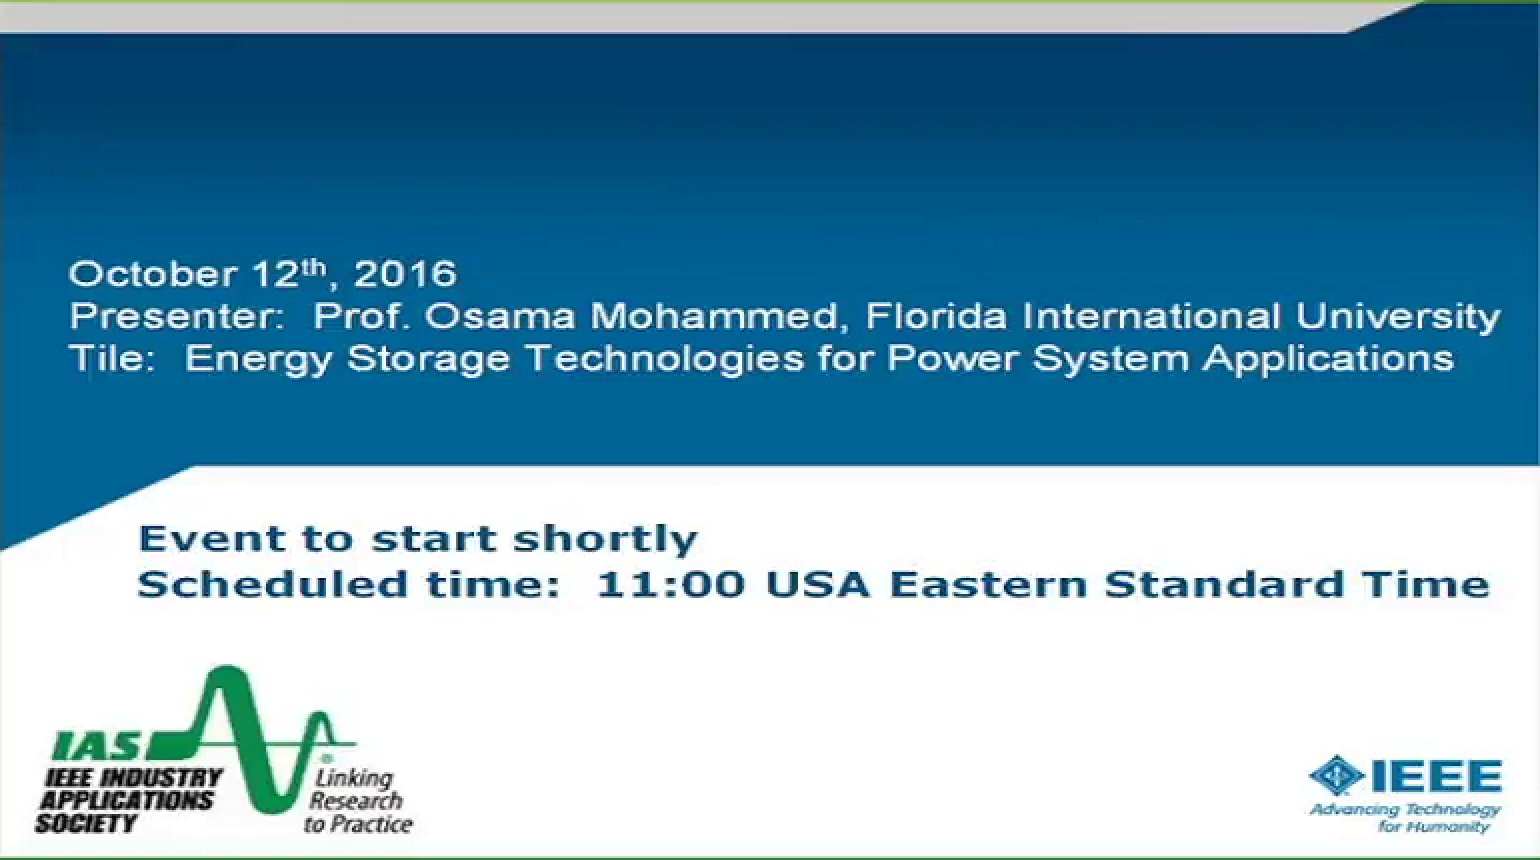 IAS Webinar Series - Energy Storage Technologies for Power System Applications